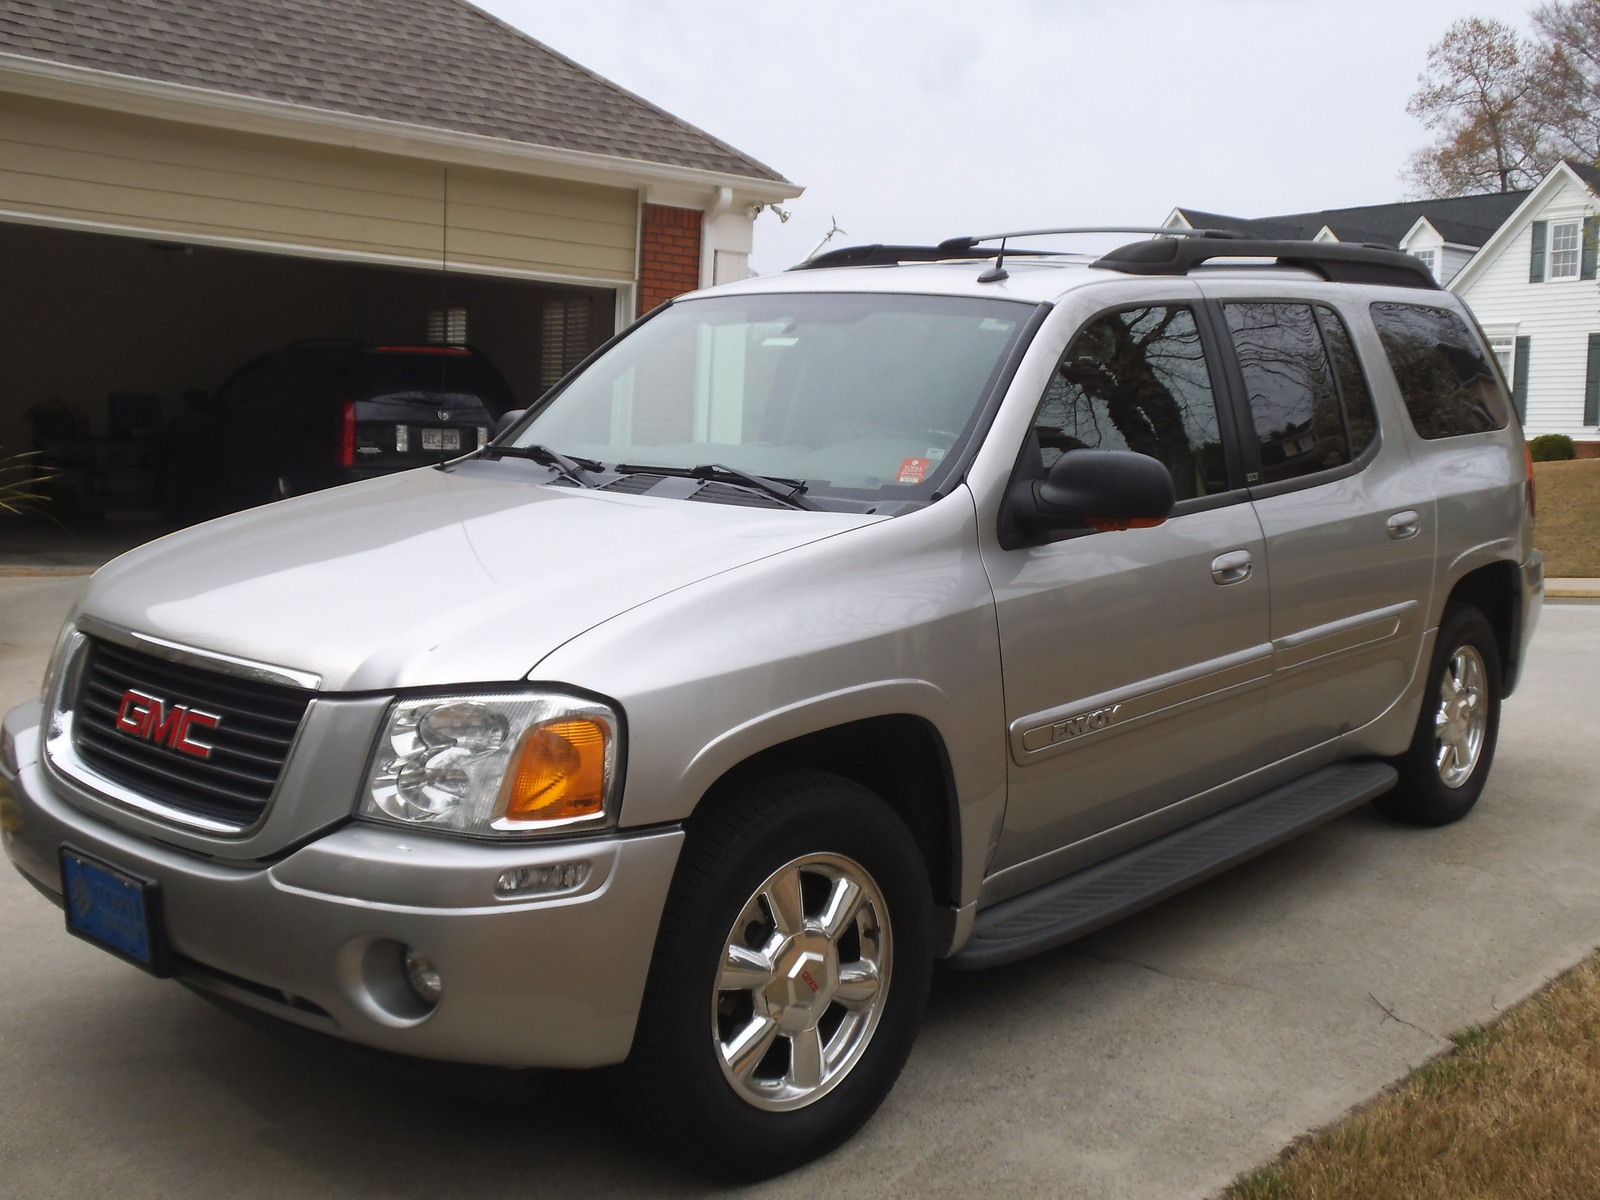 2005 gmc envoy xl overview cargurus. Black Bedroom Furniture Sets. Home Design Ideas